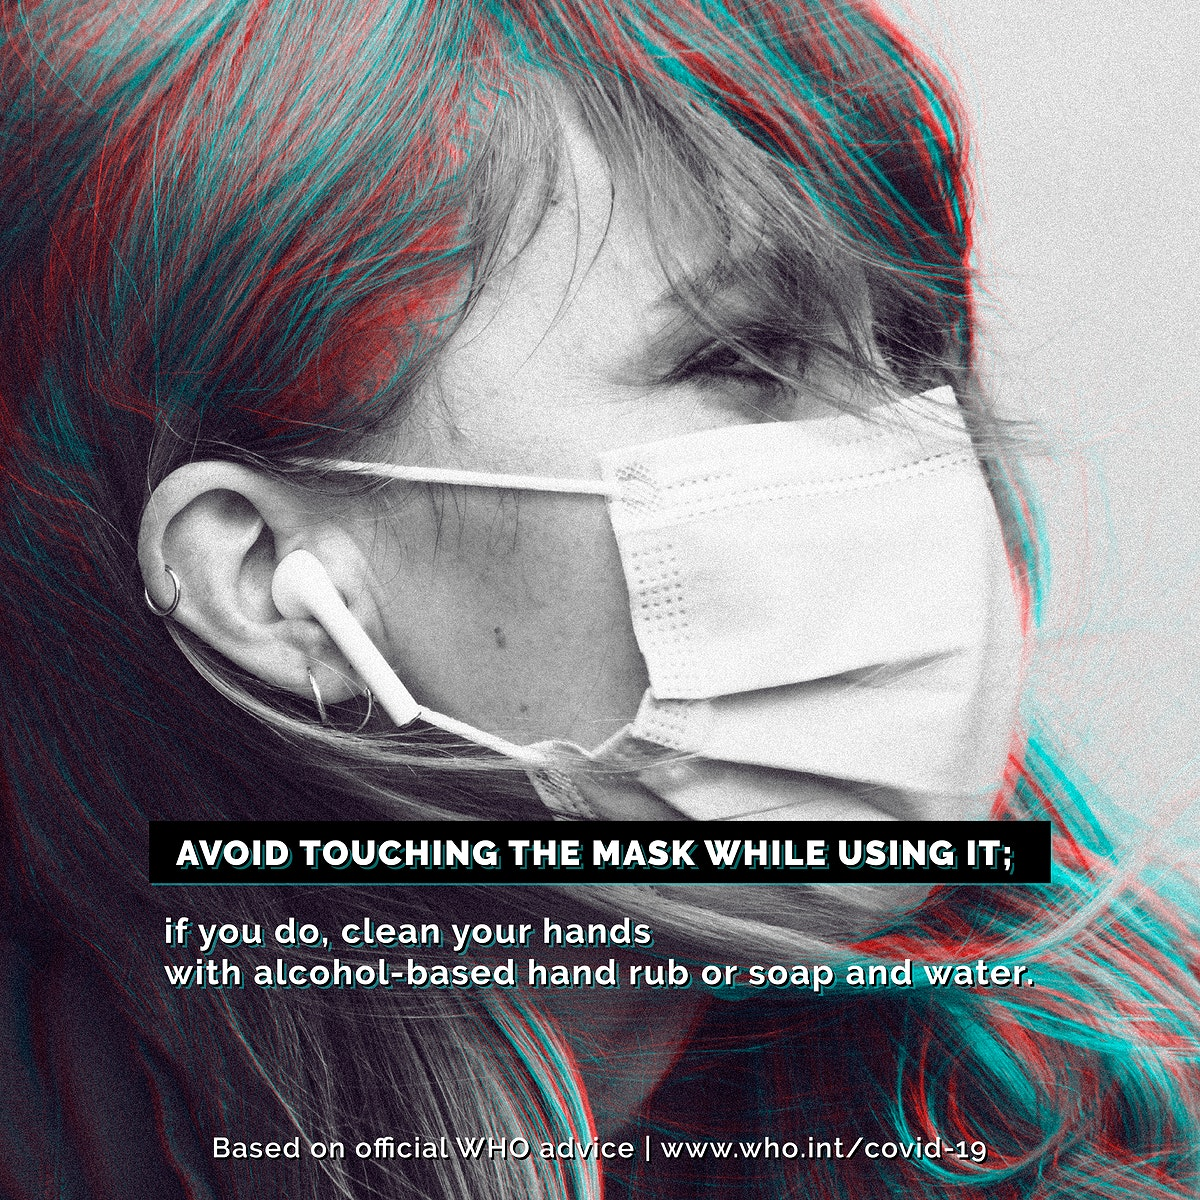 Mask wearing tips during the COVID-19 pandemic by WHO vector social ad